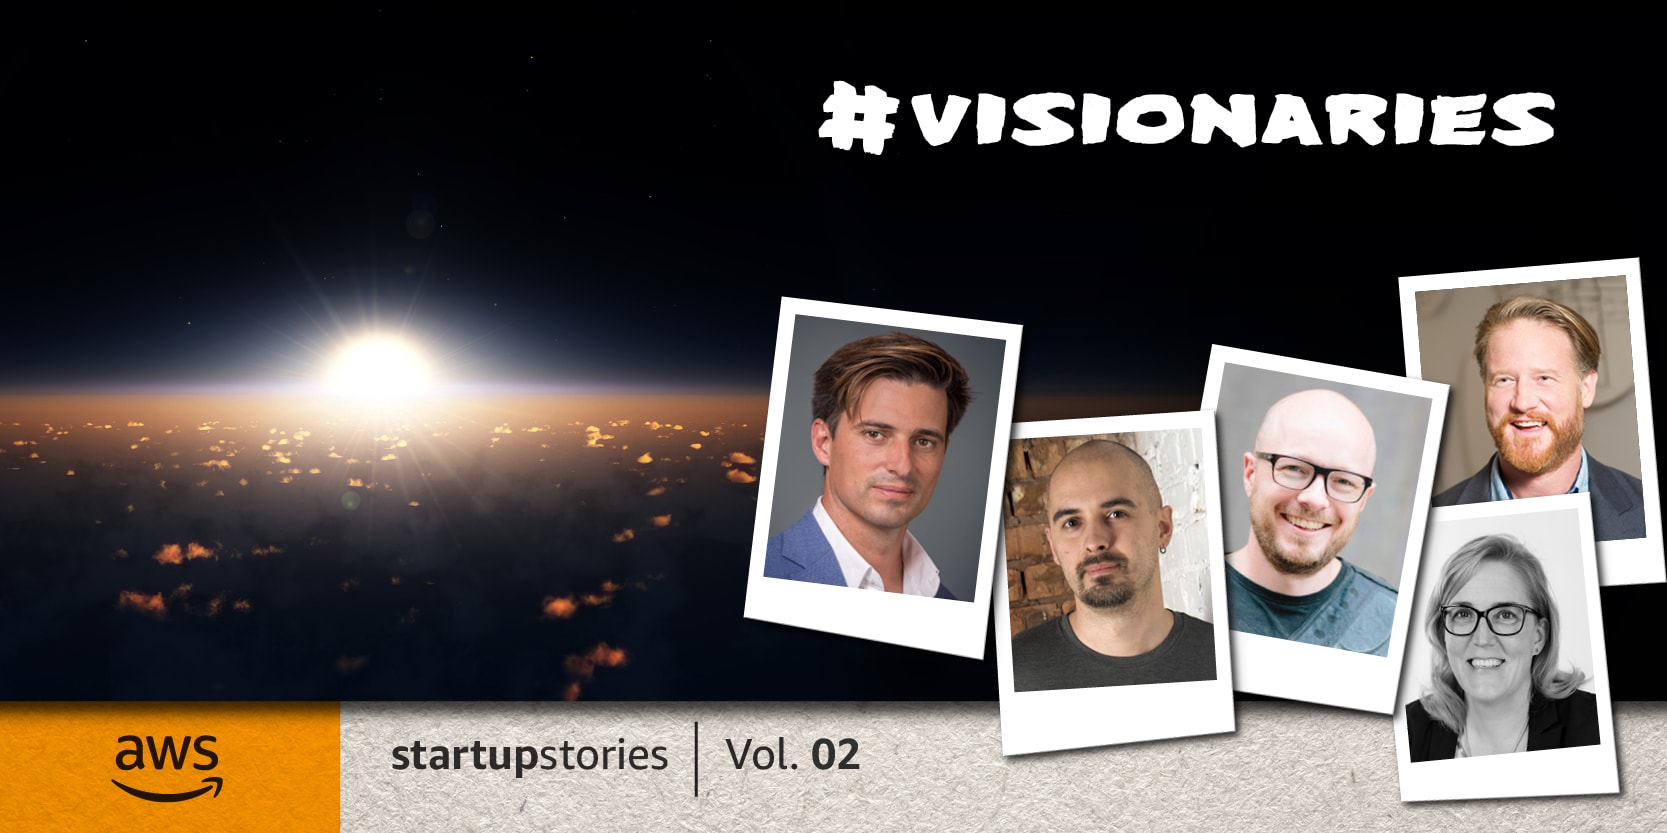 Startup_Stories_Vol2_Visionaries_Banner